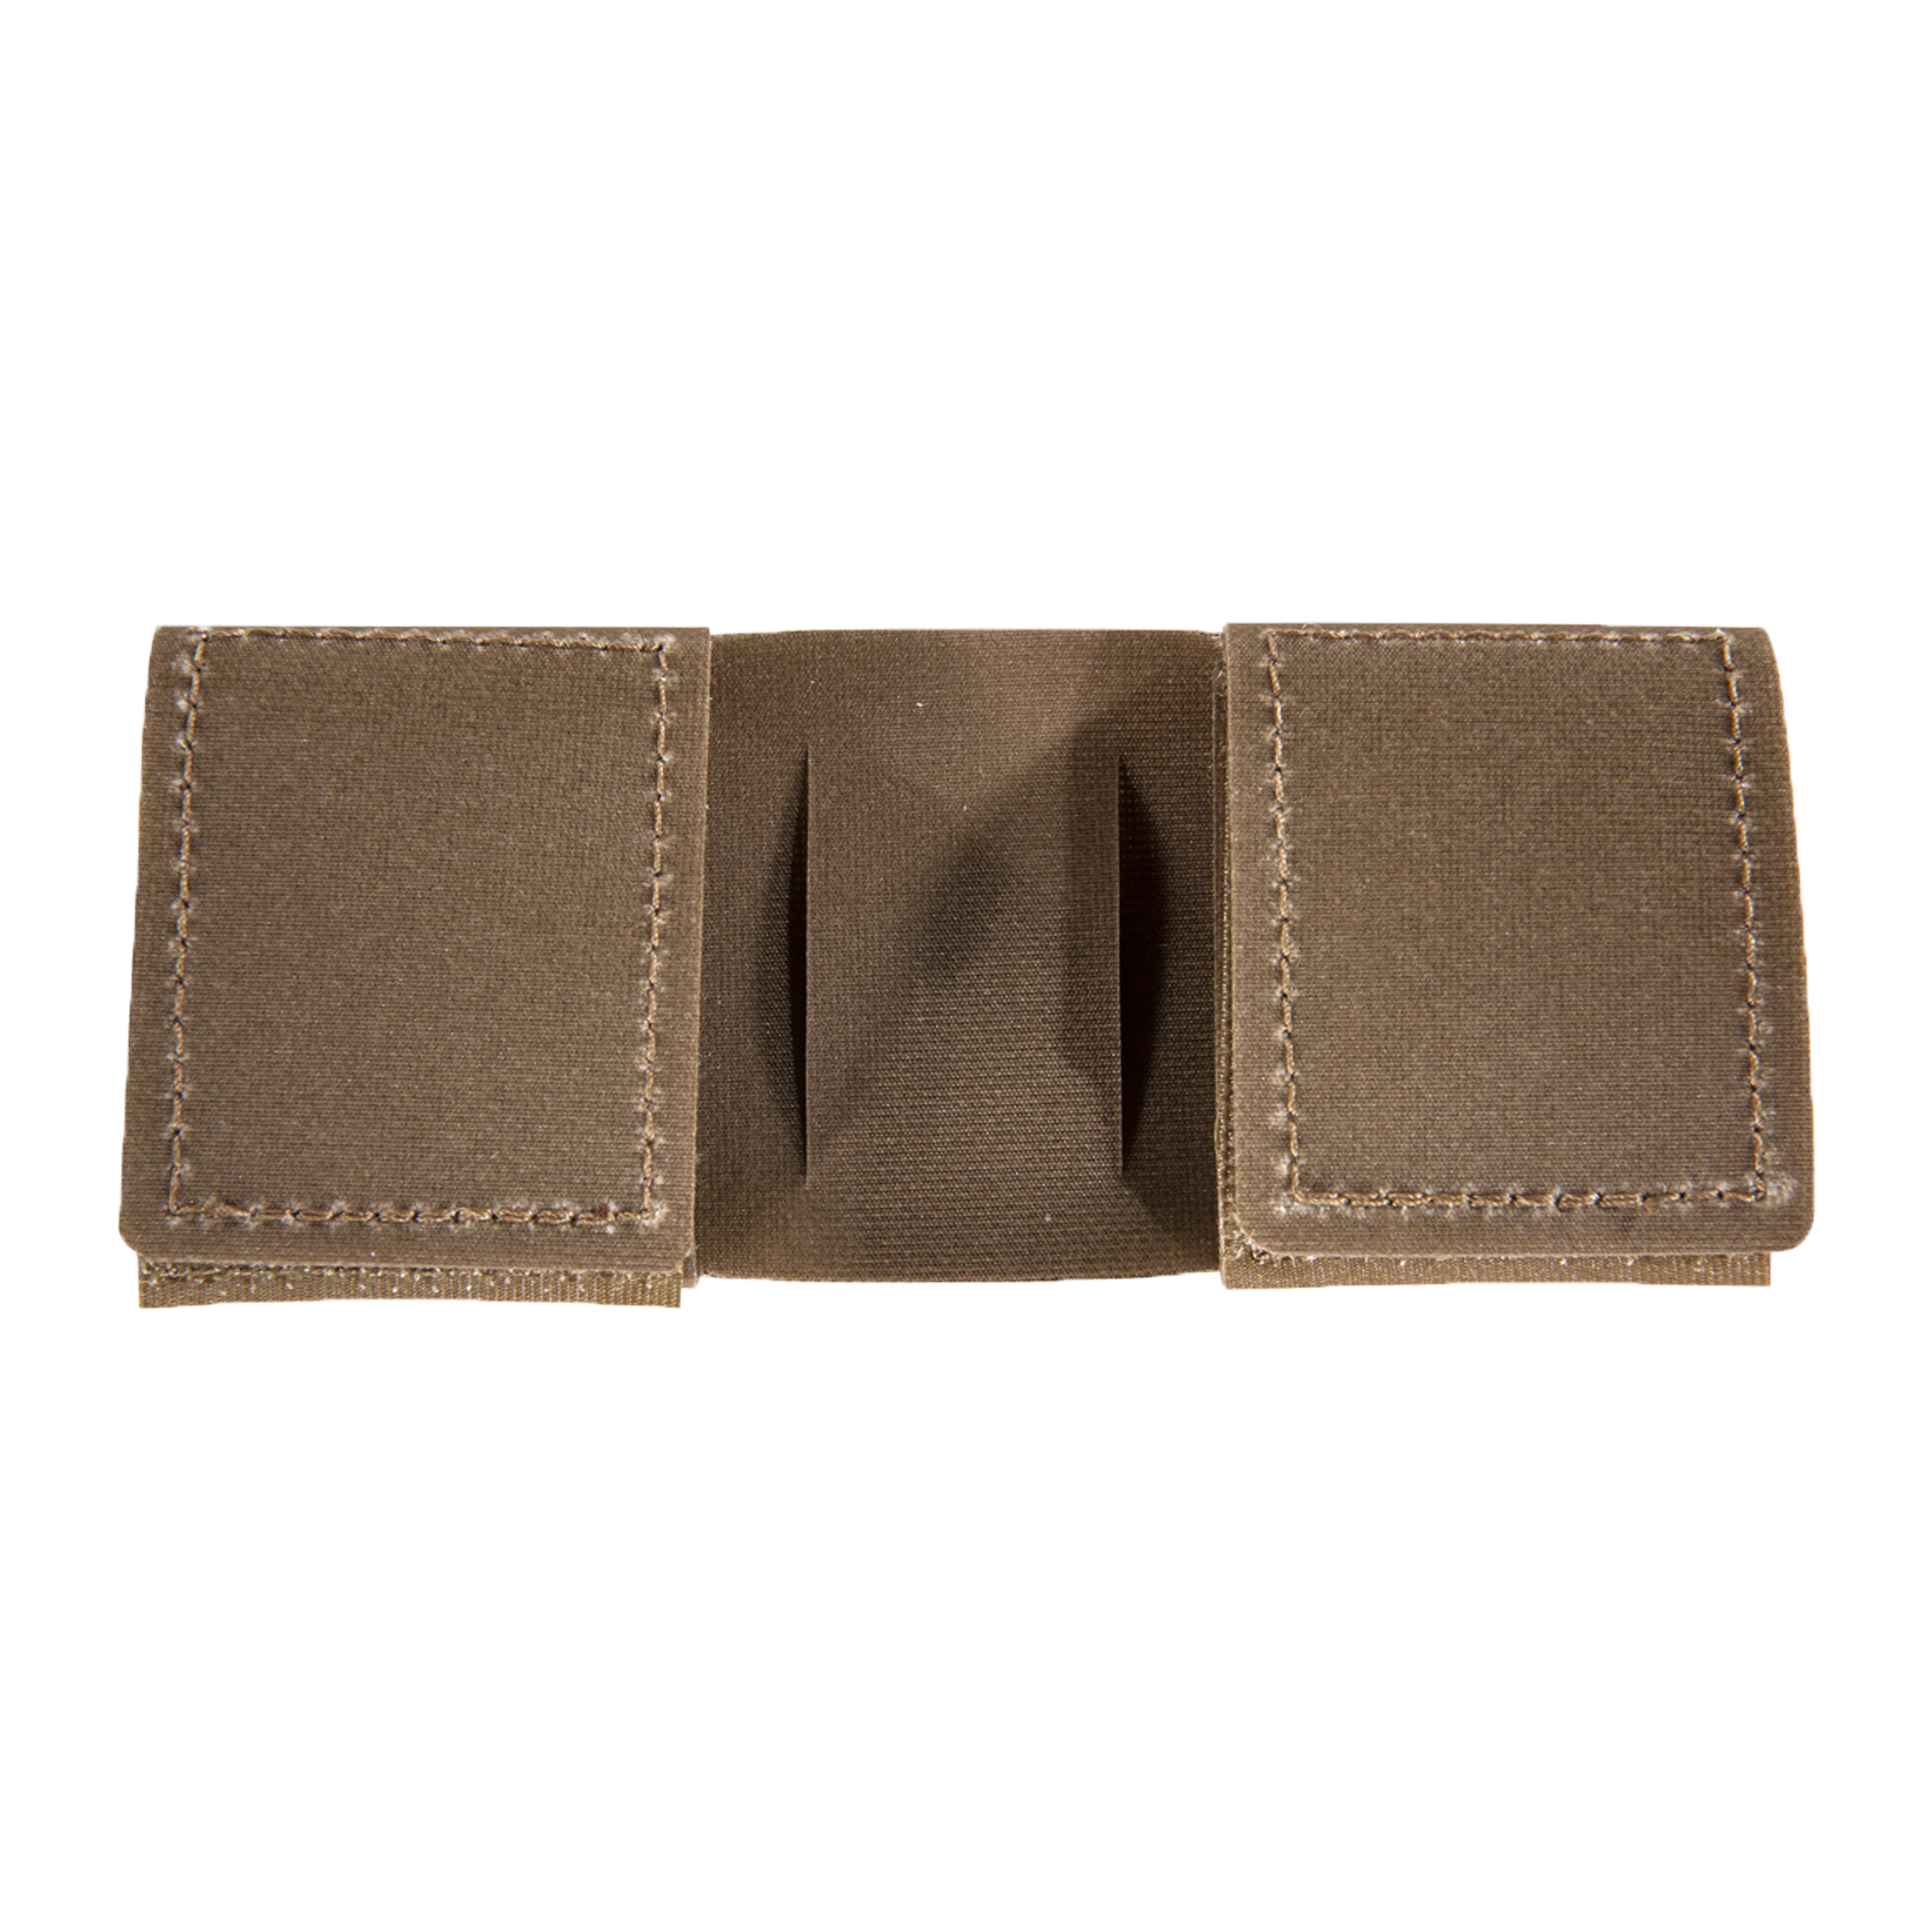 Tasmanian Tiger Tourniquet Pouch II HZ Adapter coyote brown